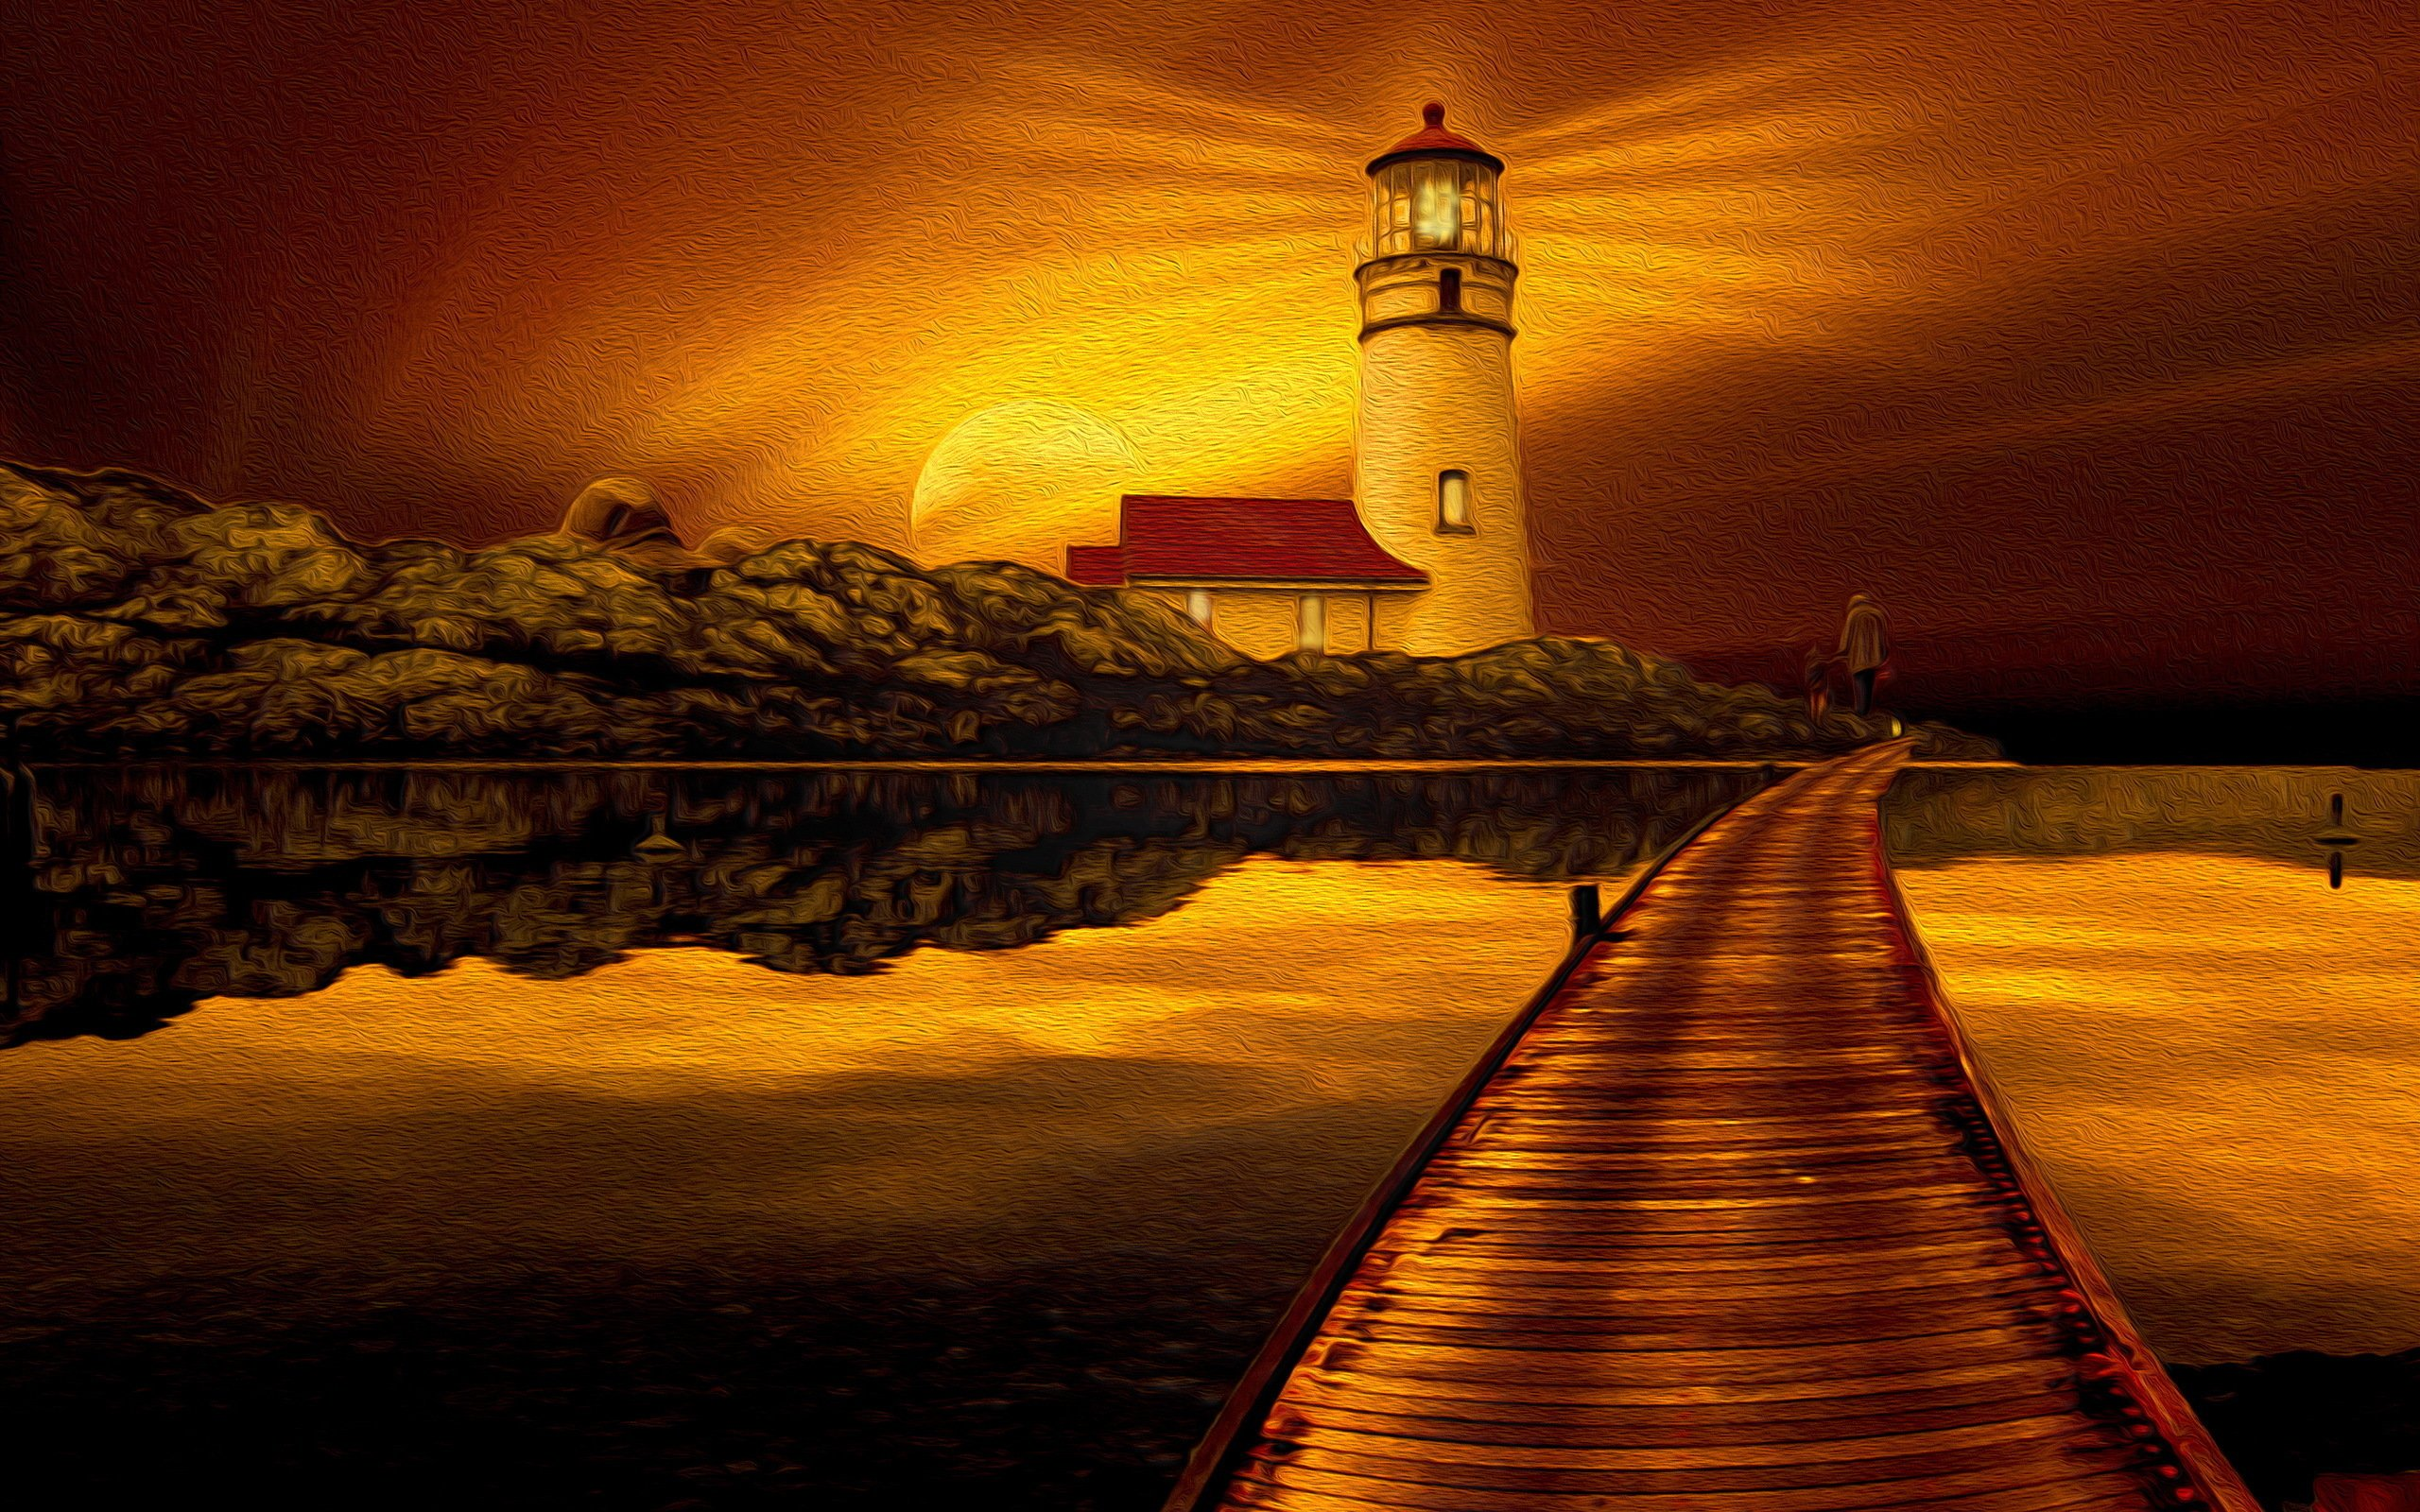 File Name Beautiful image of lighthouse desktop wallpaper of sunset 2560x1600